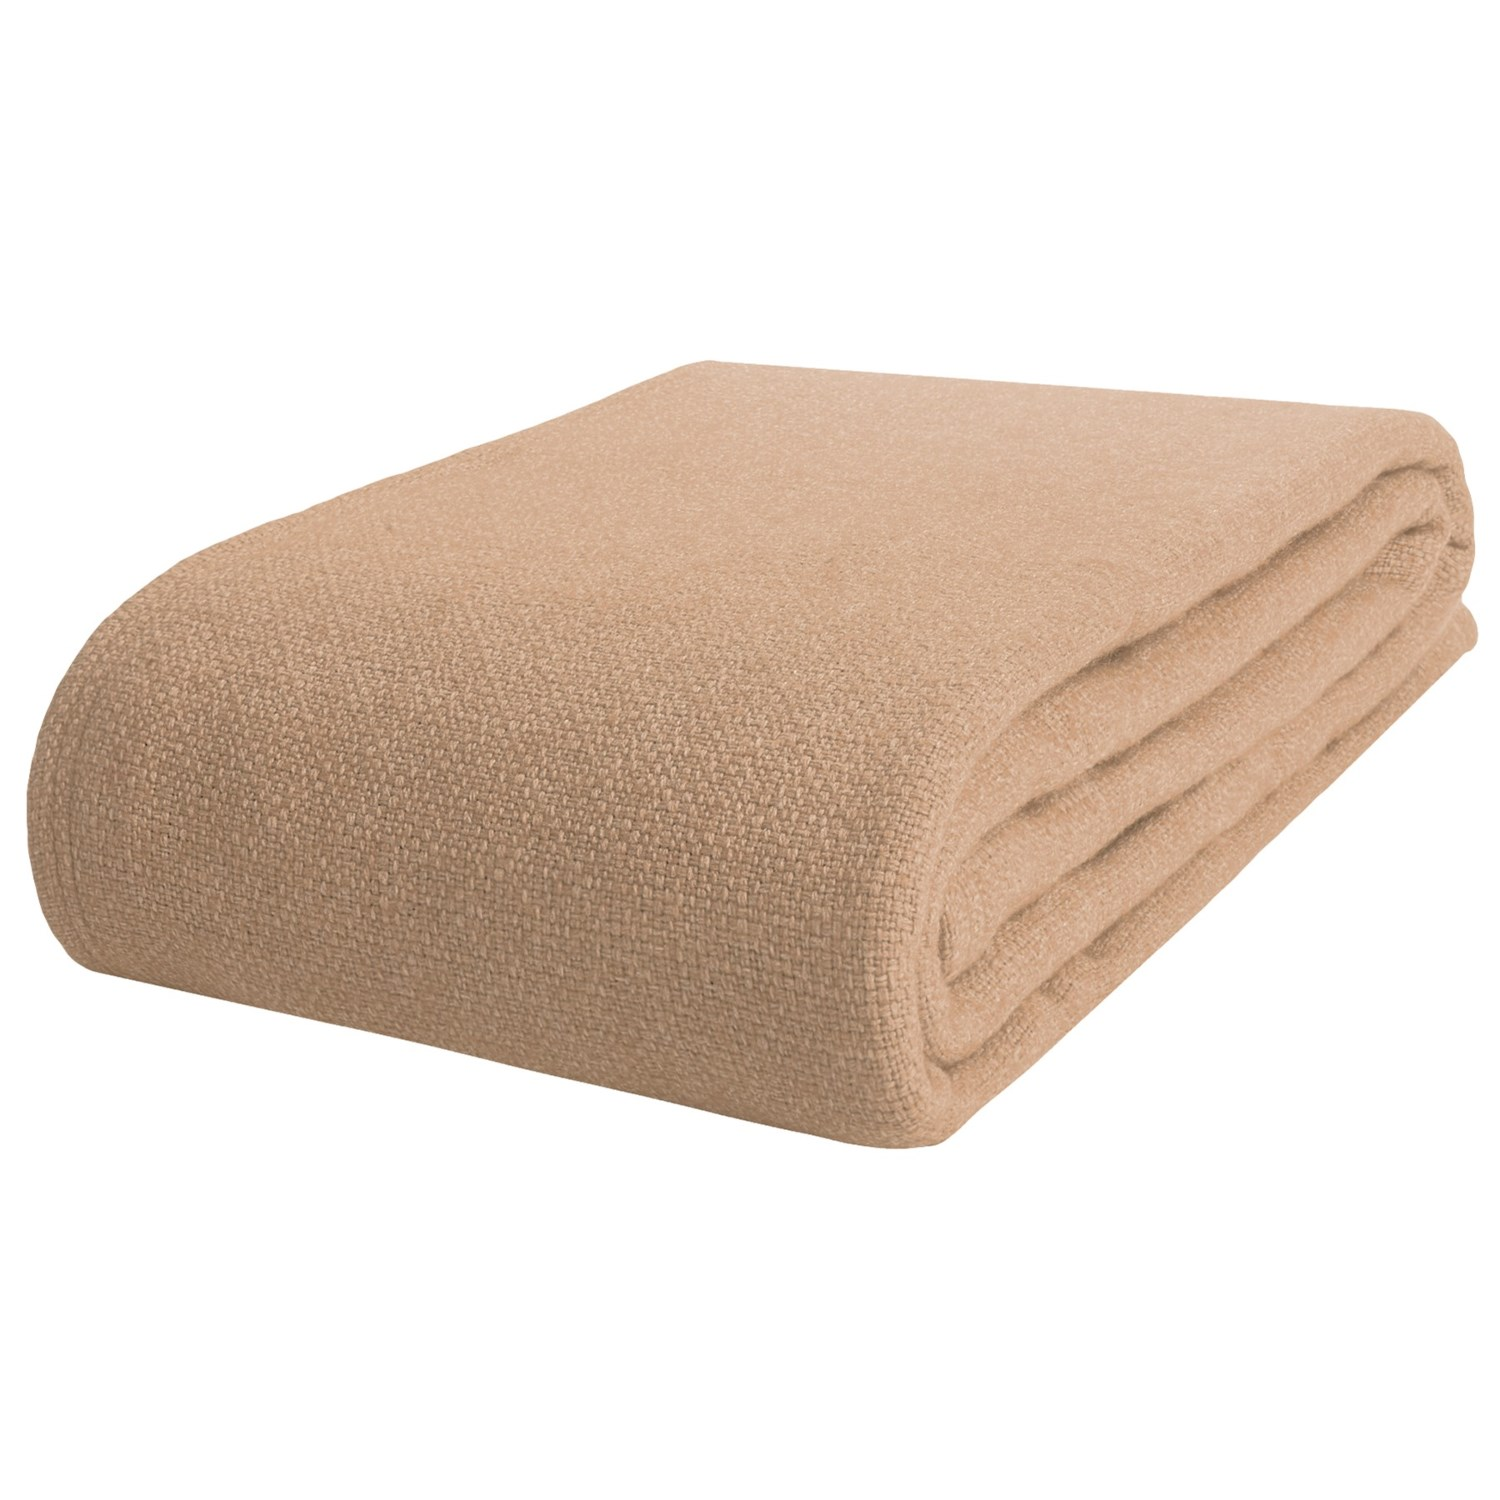 Its 100% MerinoIts 100% Merinowoolconstruction makes theIts 100% MerinoIts 100% Merinowoolconstruction makes theblanketas soft as it is beautiful and its BroadIts 100% MerinoIts 100% Merinowoolconstruction makes theIts 100% MerinoIts 100% Merinowoolconstruction makes theblanketas soft as it is beautiful and its BroadStripe Wool Blanket by Faribault Woolen Mill SubmitIts 100% MerinoIts 100% Merinowoolconstruction makes theIts 100% MerinoIts 100% Merinowoolconstruction makes theblanketas soft as it is beautiful and its BroadIts 100% MerinoIts 100% Merinowoolconstruction makes theIts 100% MerinoIts 100% Merinowoolconstruction makes theblanketas soft as it is beautiful and its BroadStripe Wool Blanket by Faribault Woolen Mill SubmitReview.